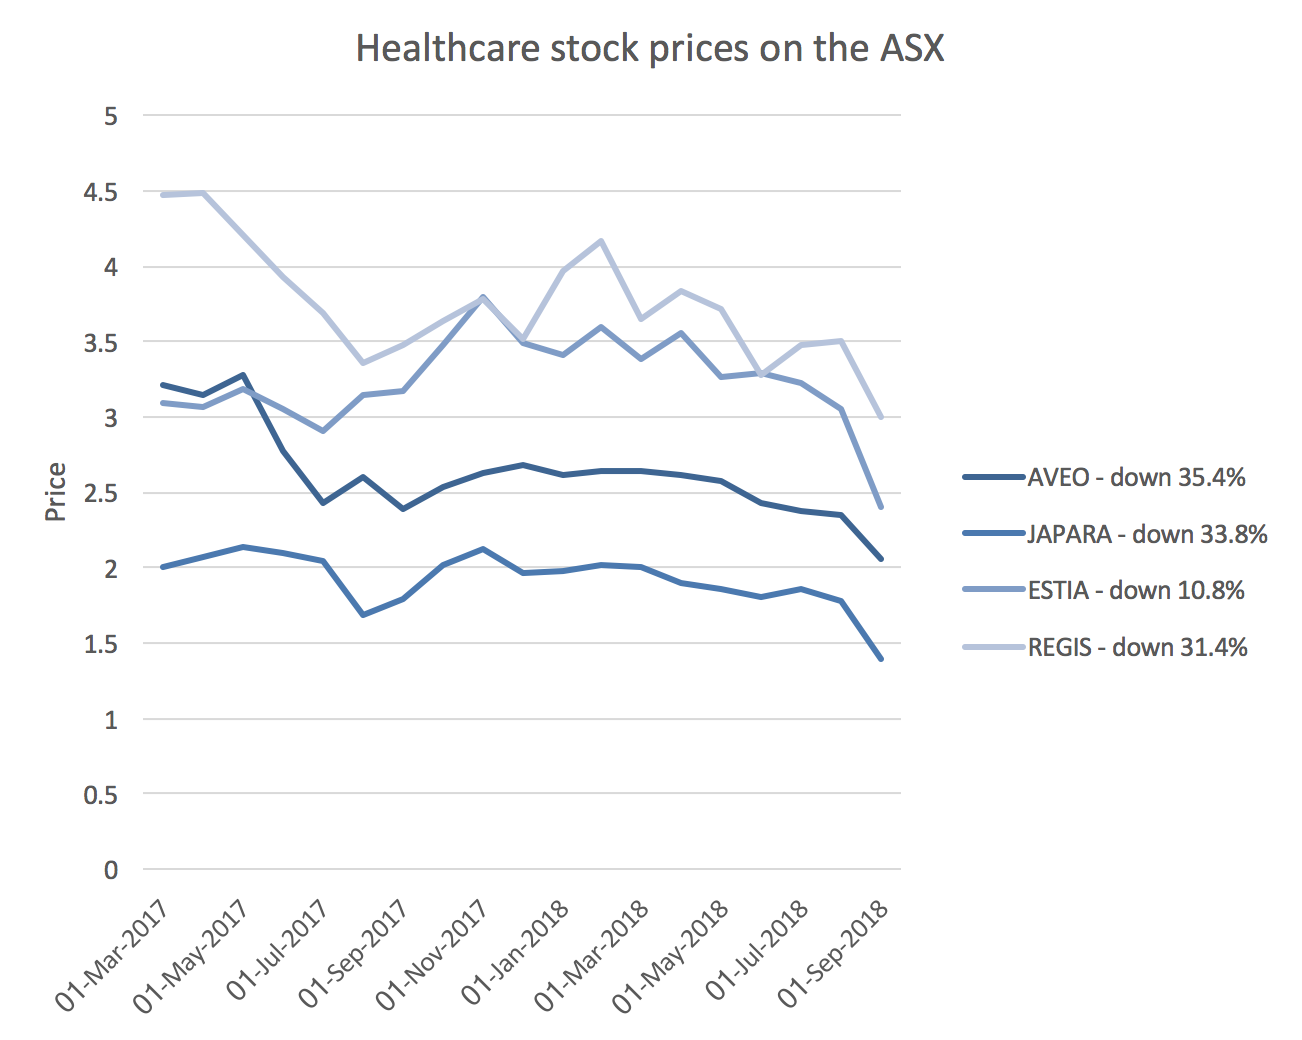 Healthcare stock prices on the ASX September 2018